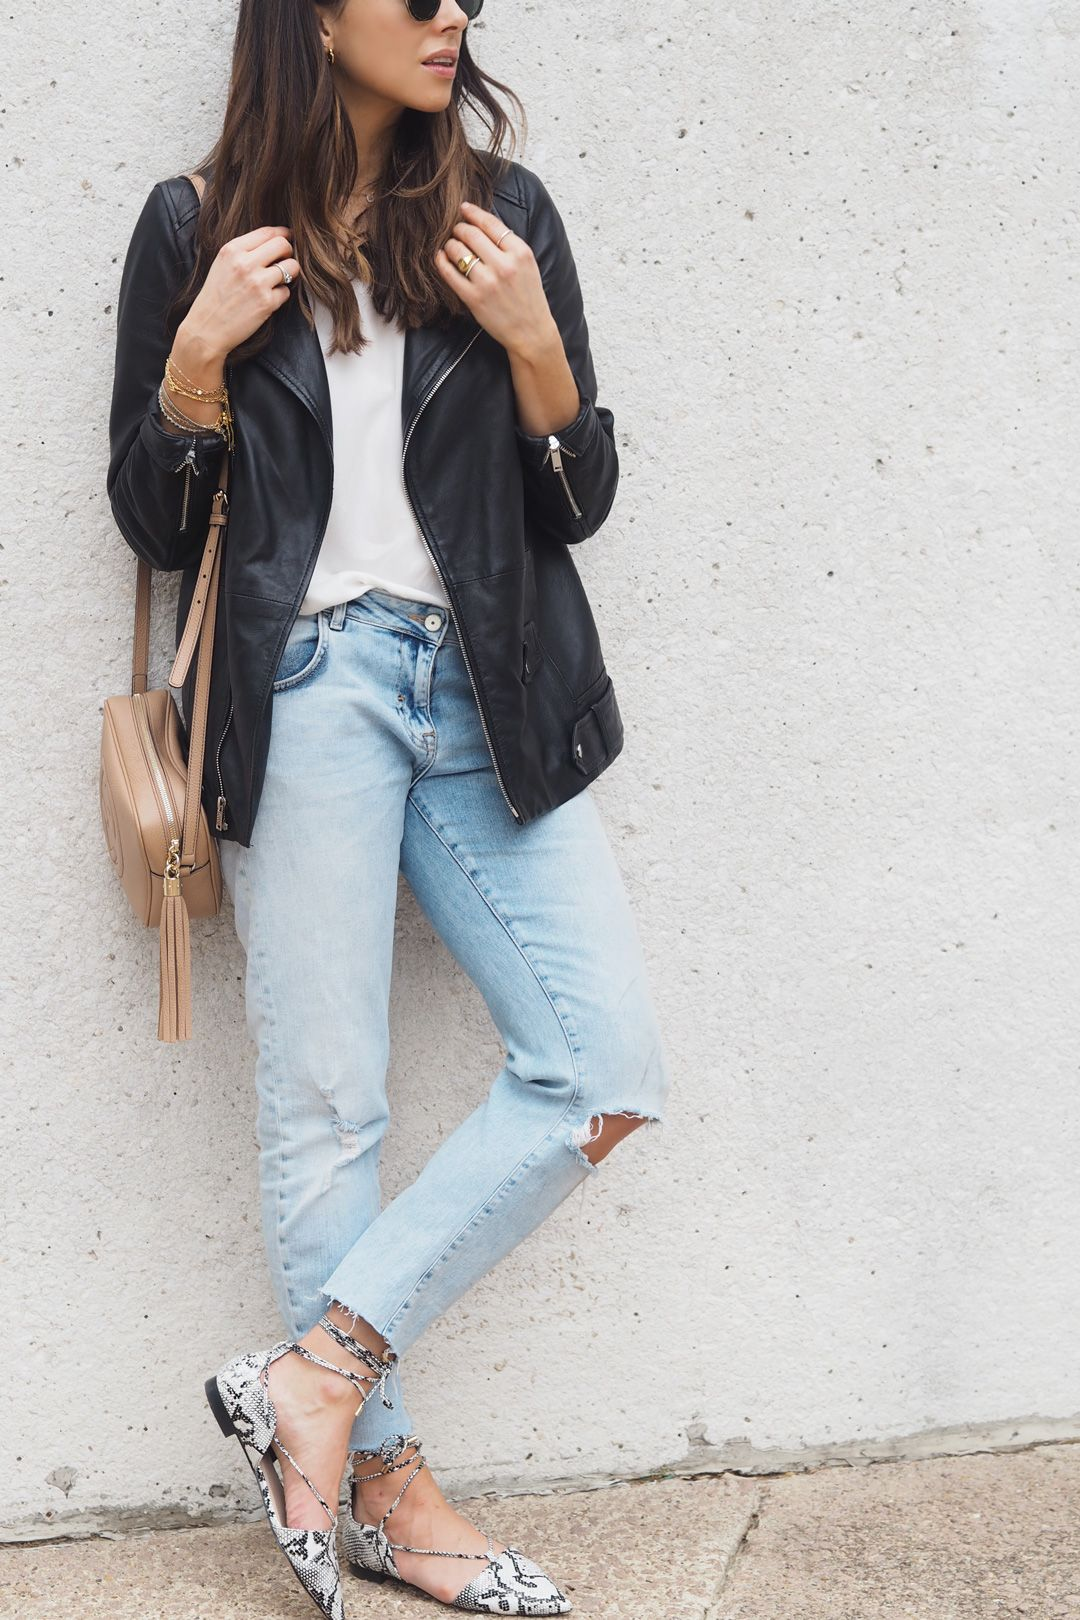 Weekend Chic / More on AnneliBush.com